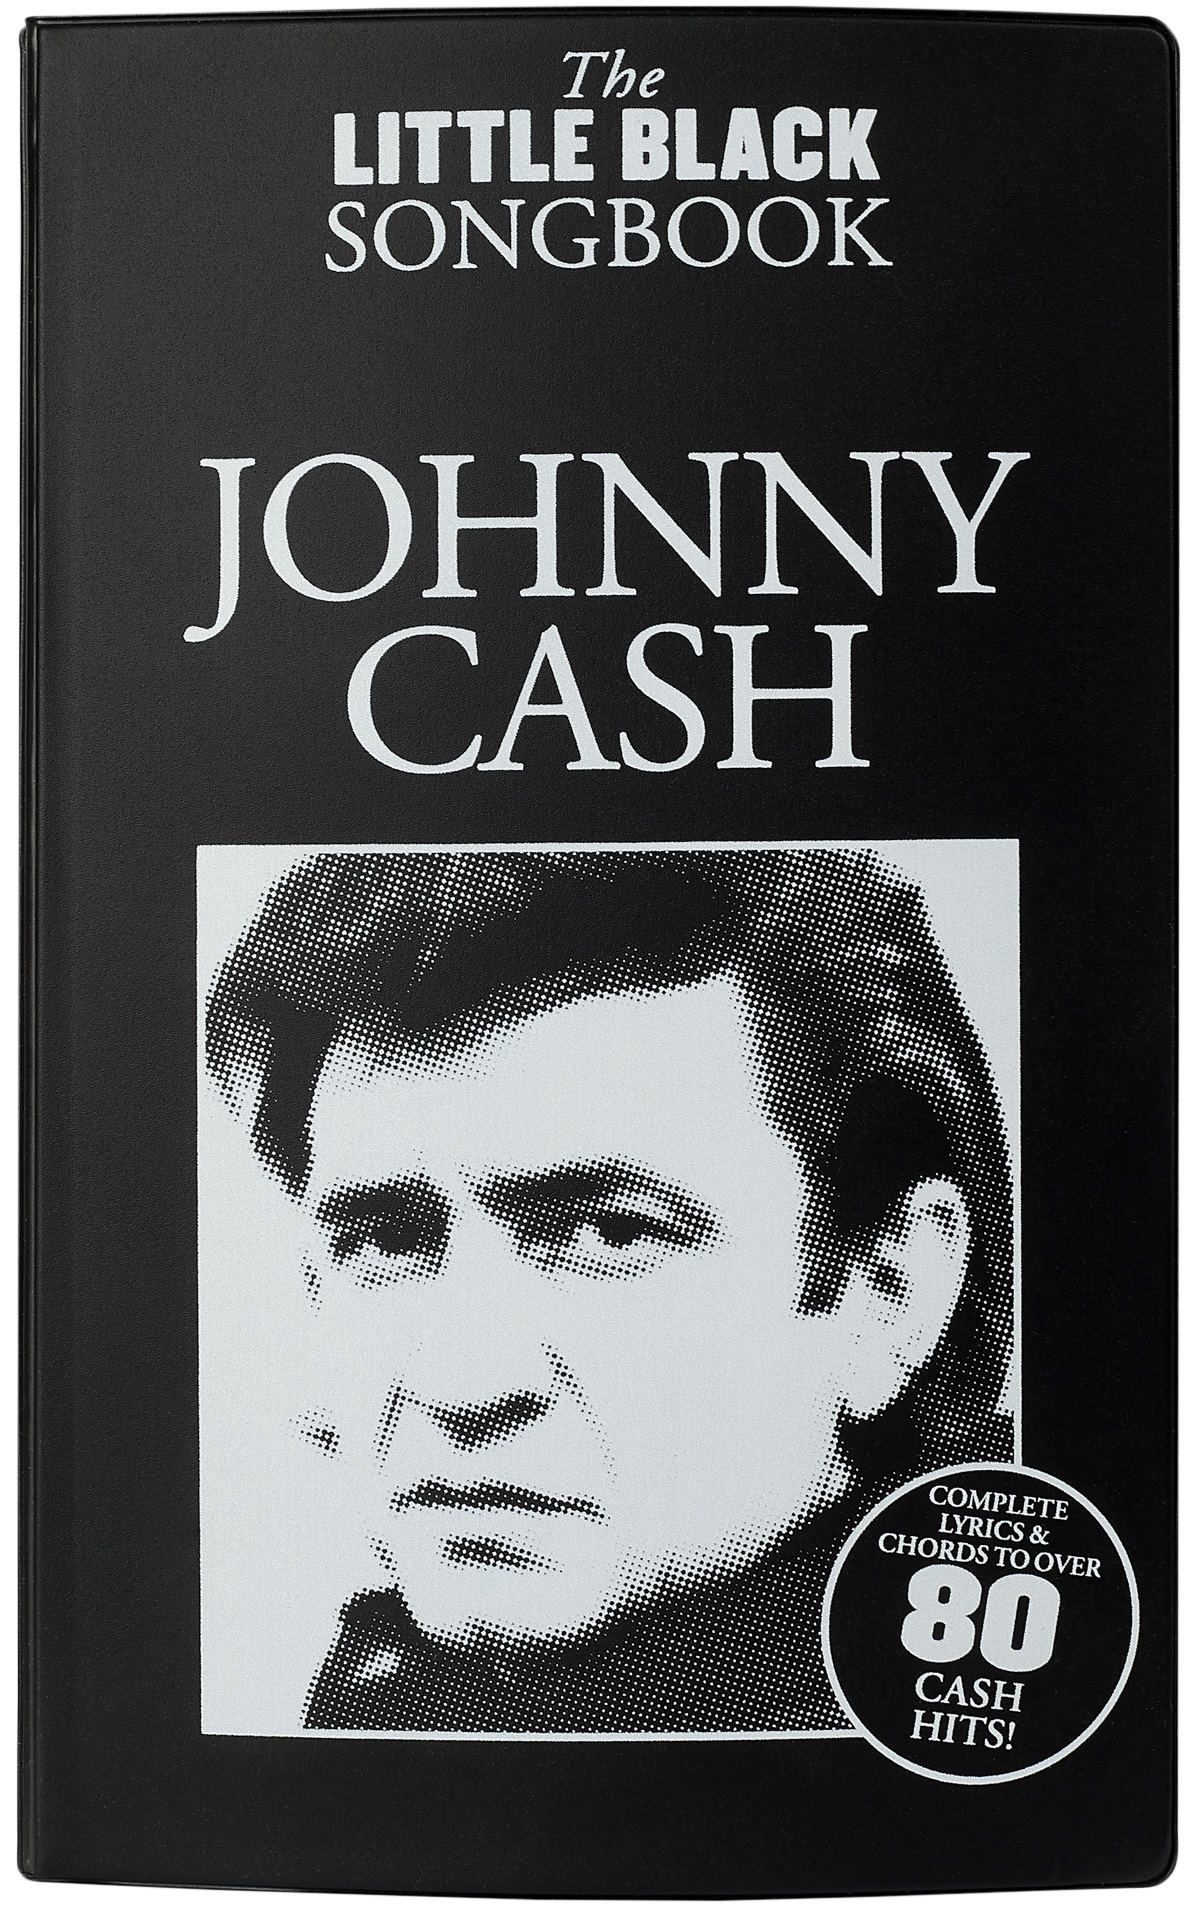 MS The Little Black Songbook: Johnny Cash